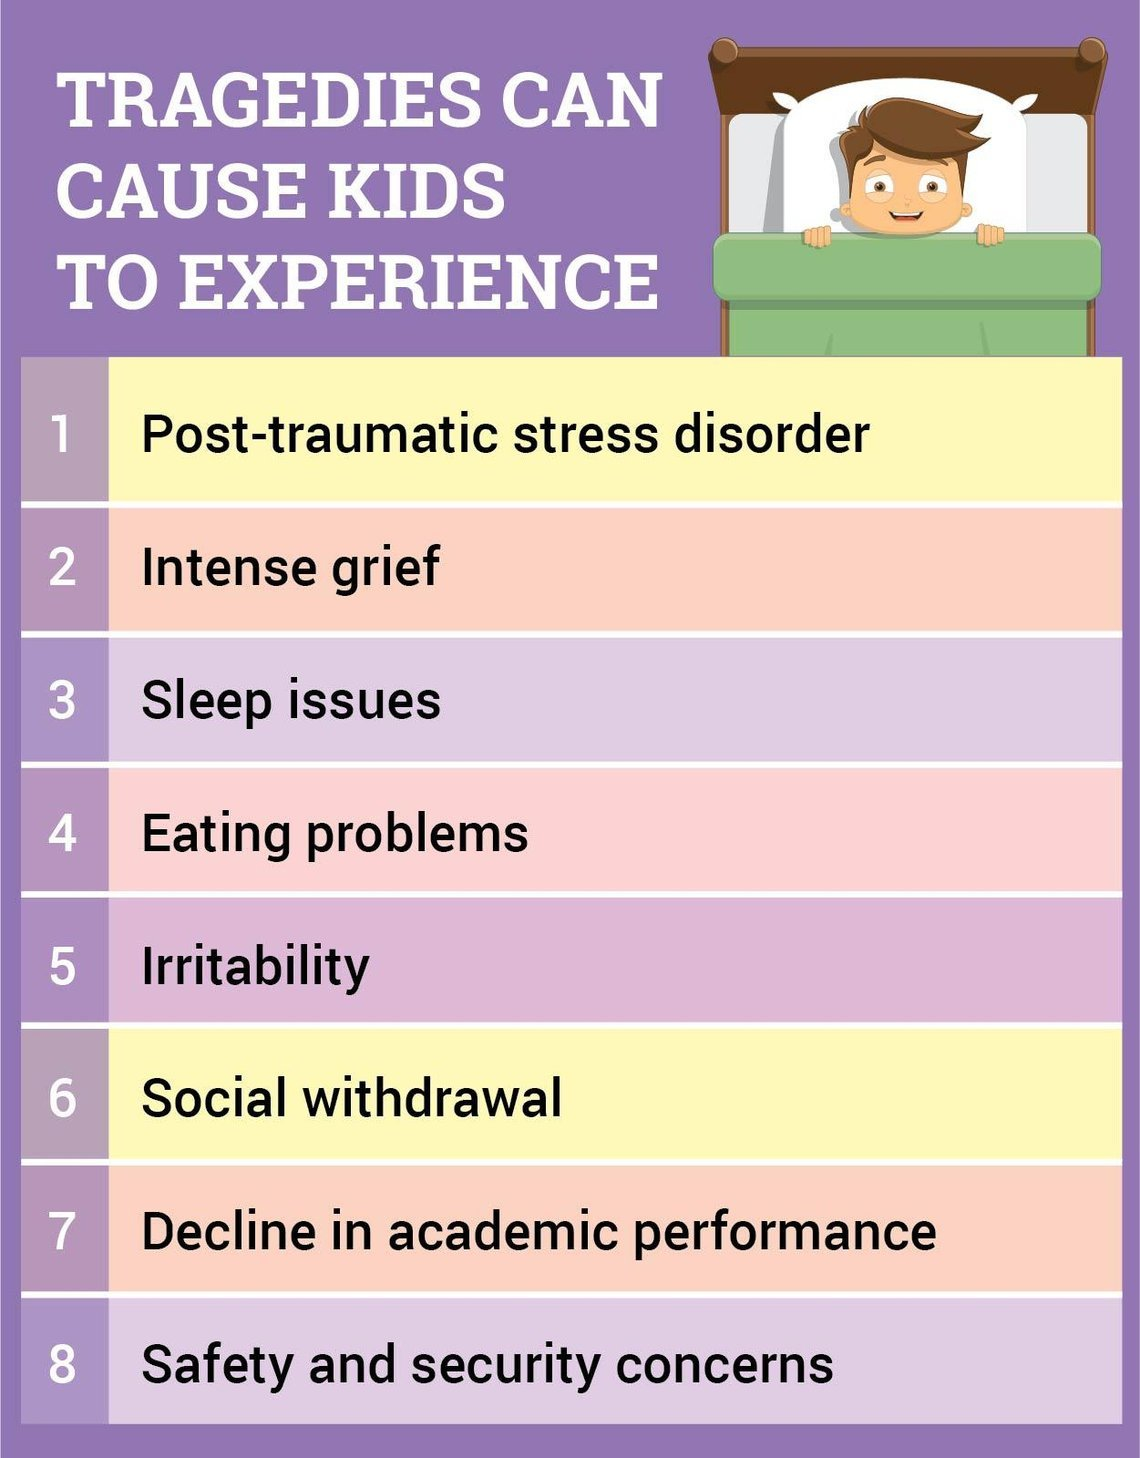 How to Teach Children to Cope with Tragedies